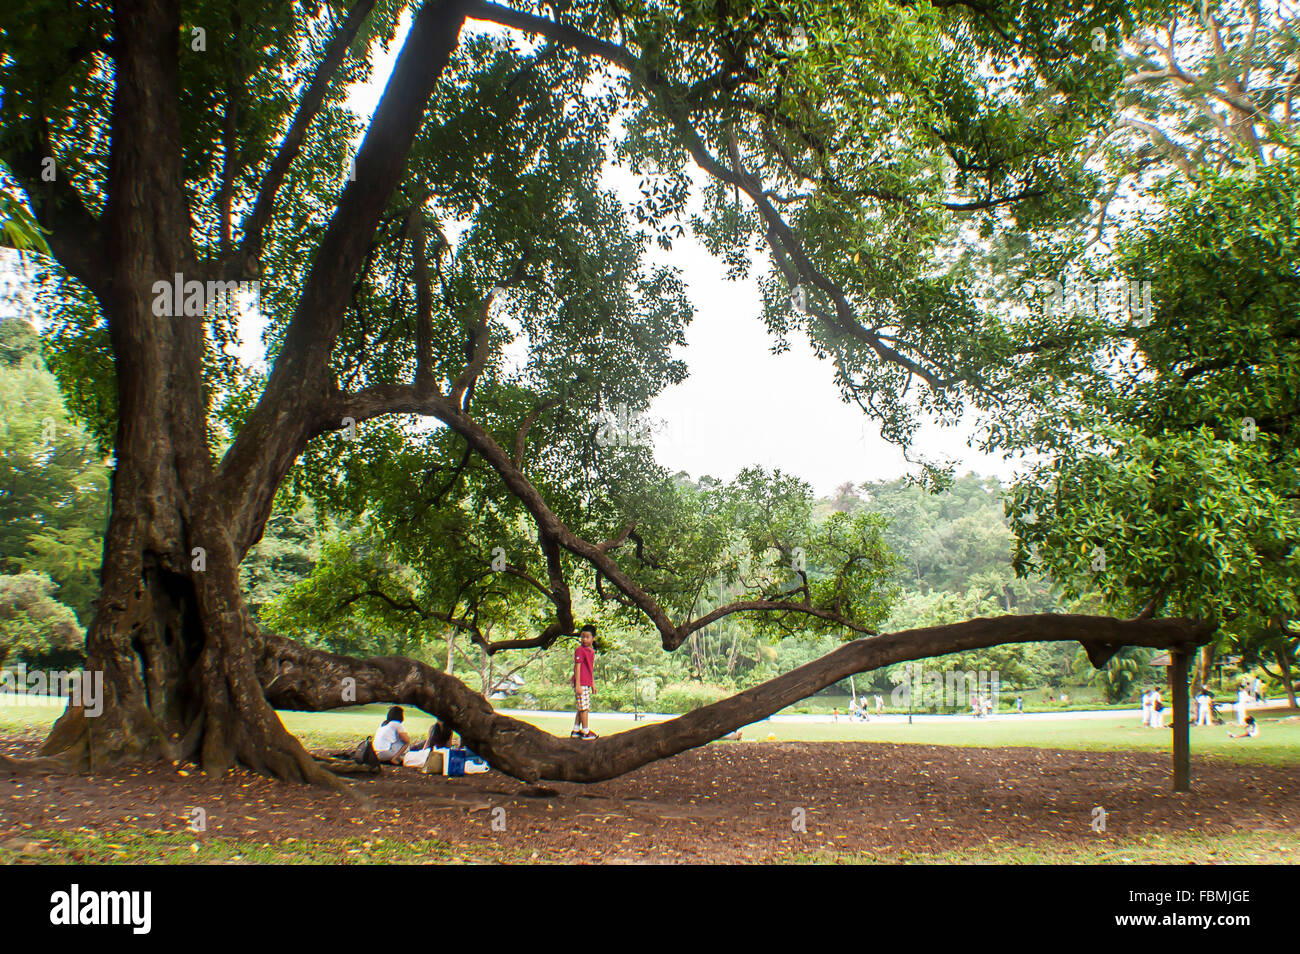 Kids Playing On Tree In Park - Stock Image